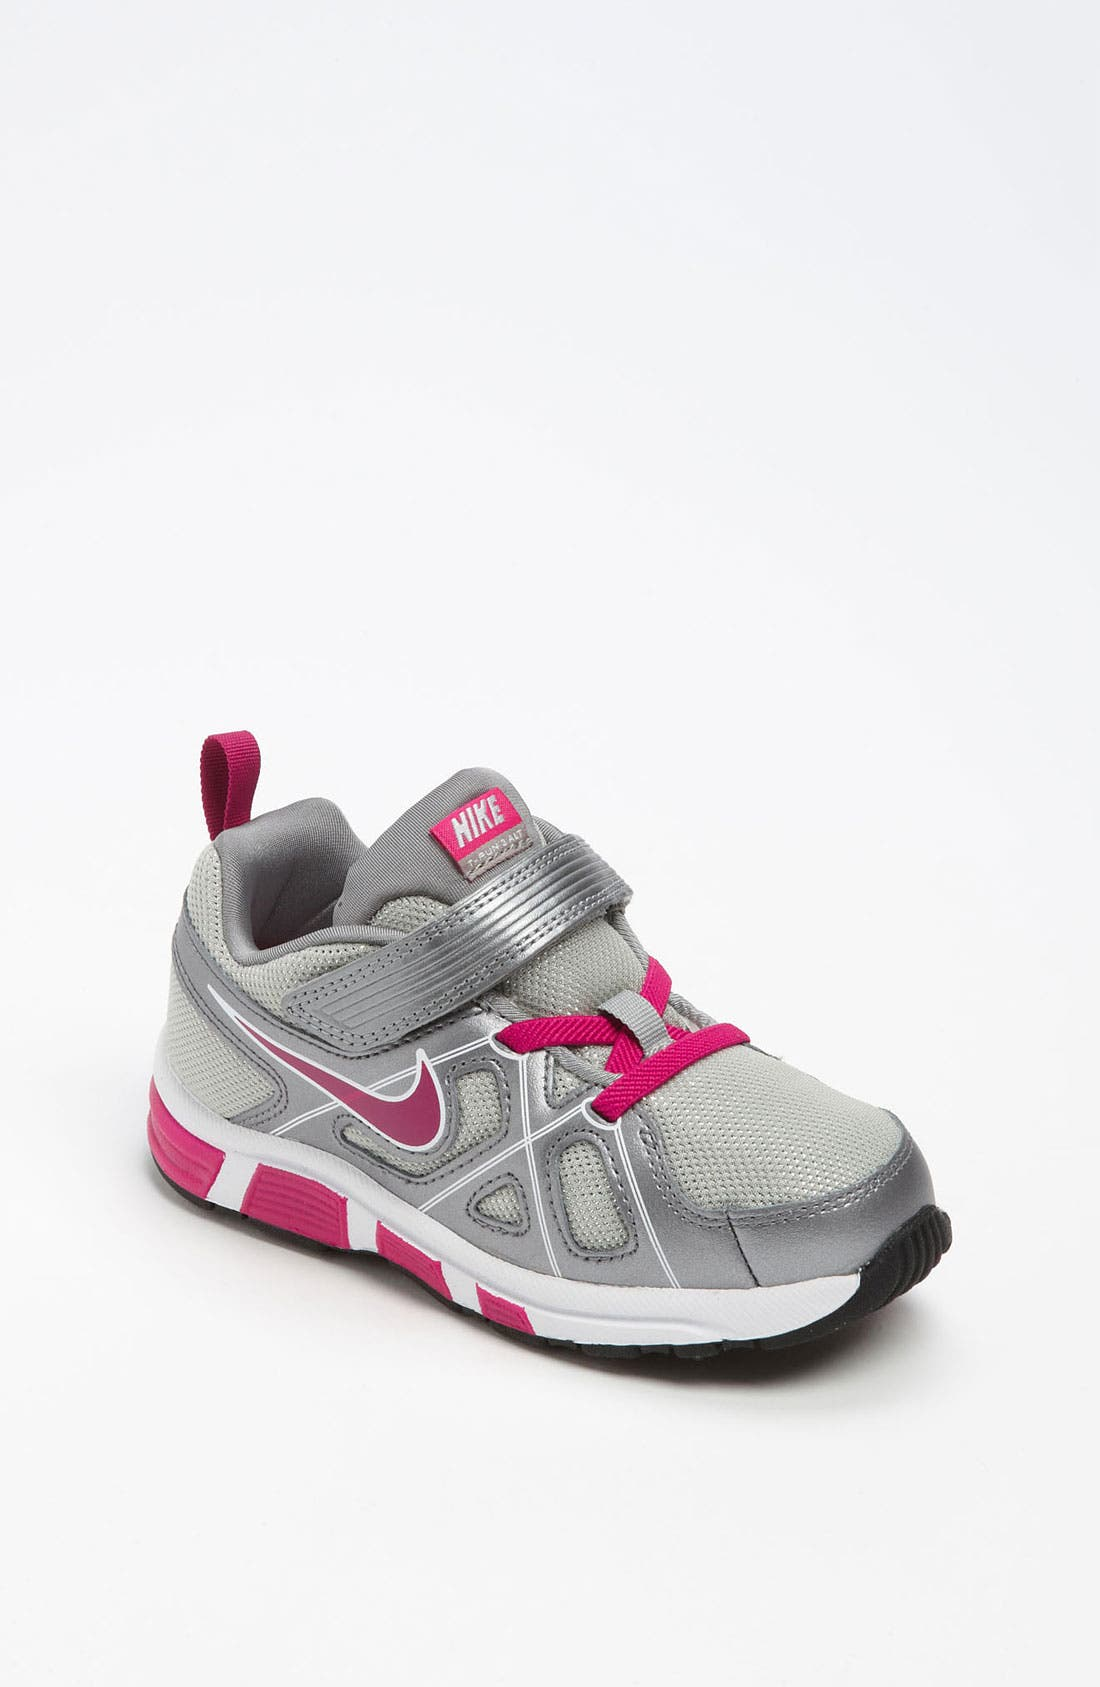 Alternate Image 1 Selected - Nike 'T-Run 3 Alt' Running Shoe (Baby, Walker & Toddler) (Special Purchase)